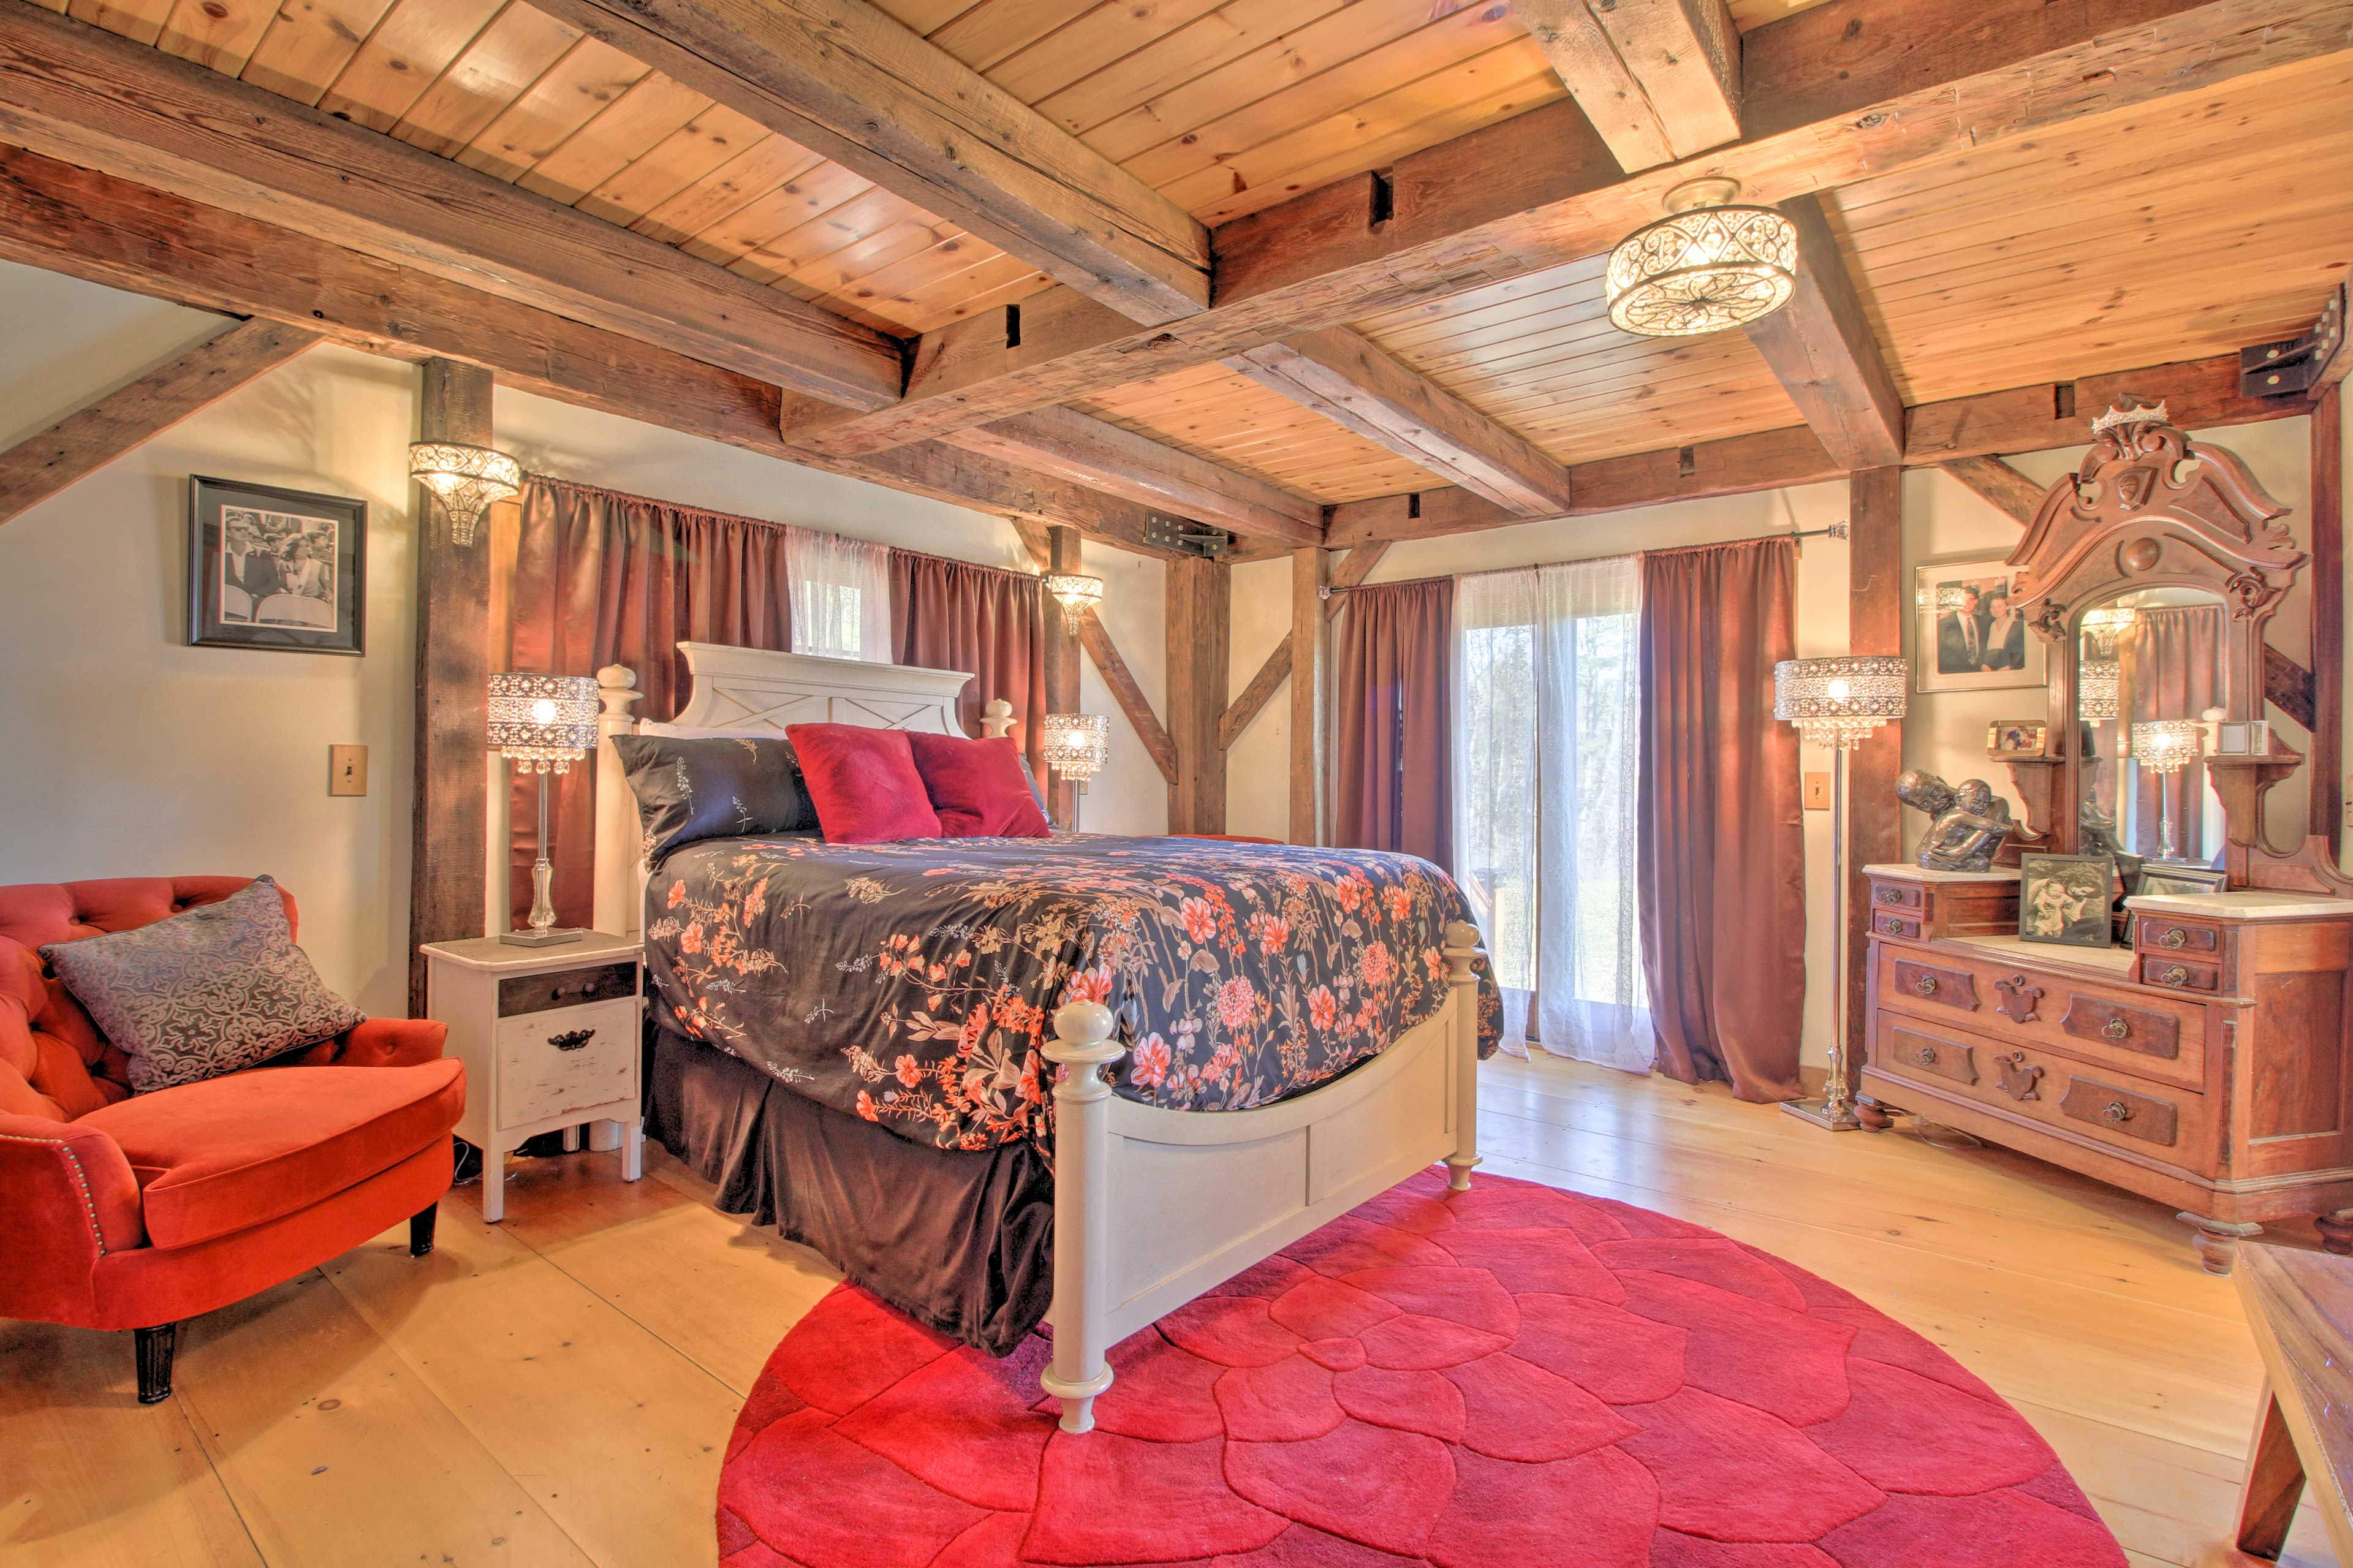 The Queen room has a queen-sized bed and private patio.